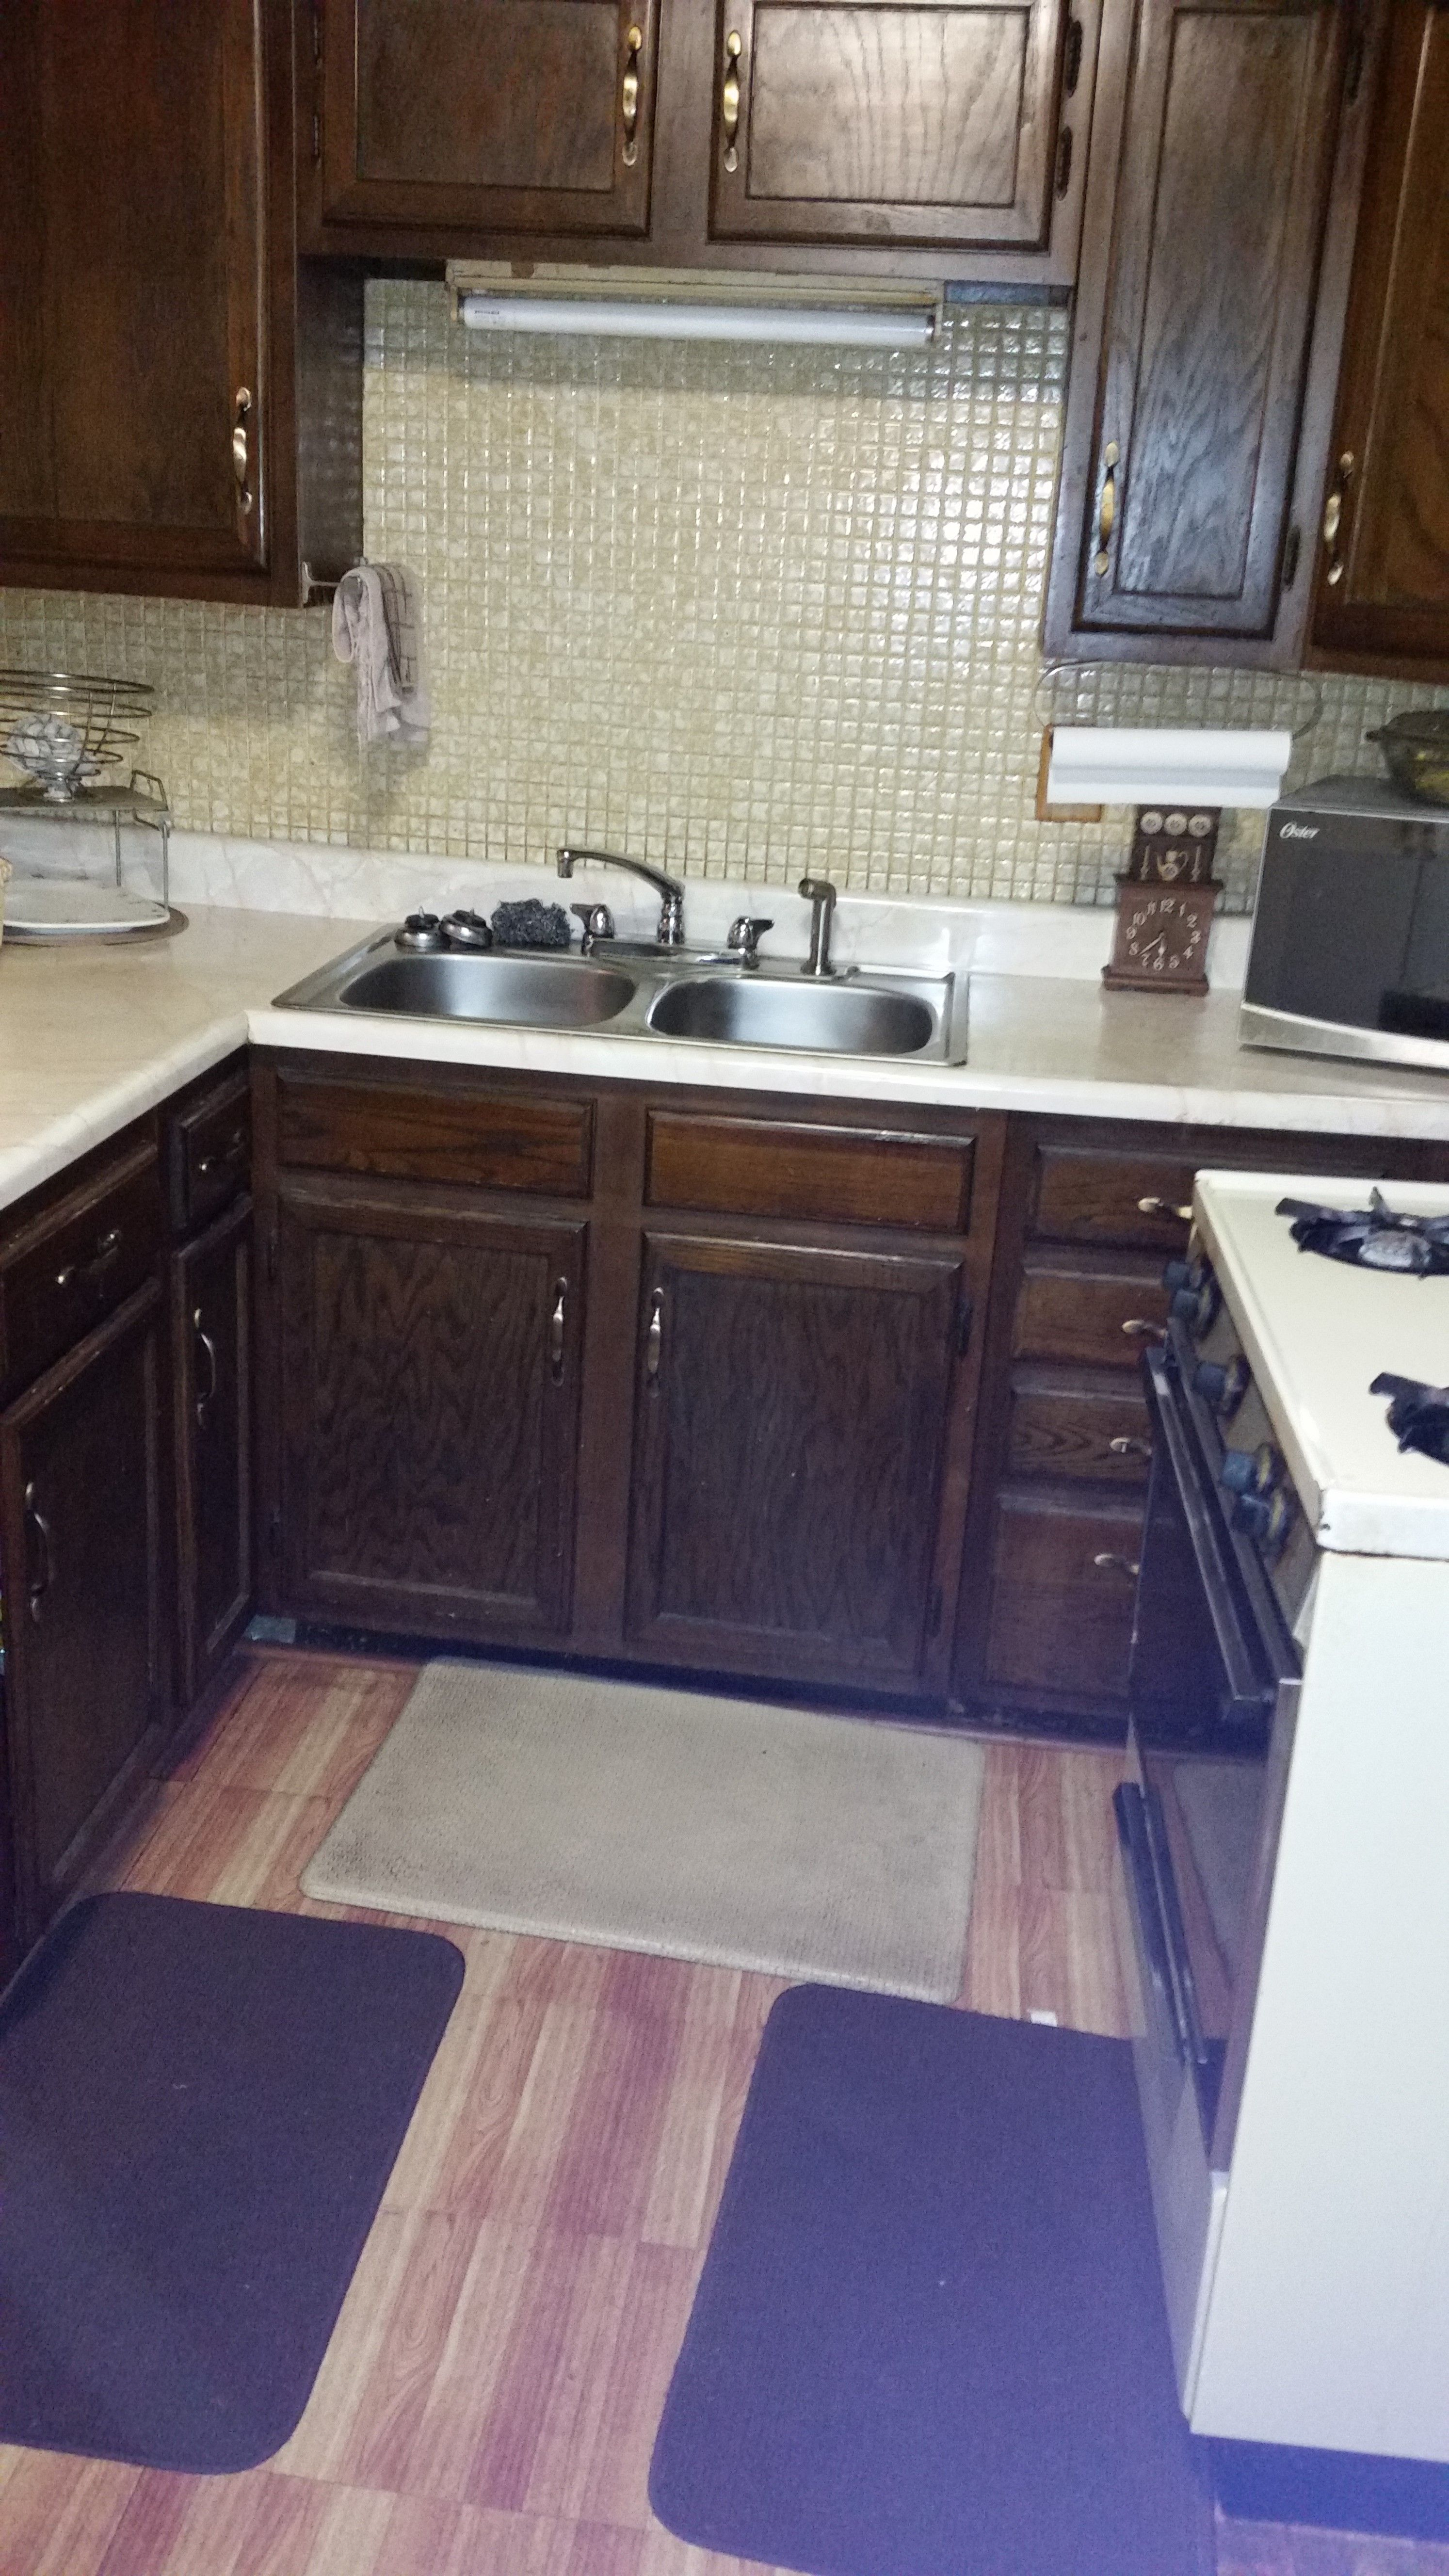 Rent To Own This 1692 Sq Ft 3 Bedroom 1 Bathroom Family Home In Kansas City Mo Today 875 Mo Dining Room Cabinet Rent To Own Homes Large Storage Cabinets